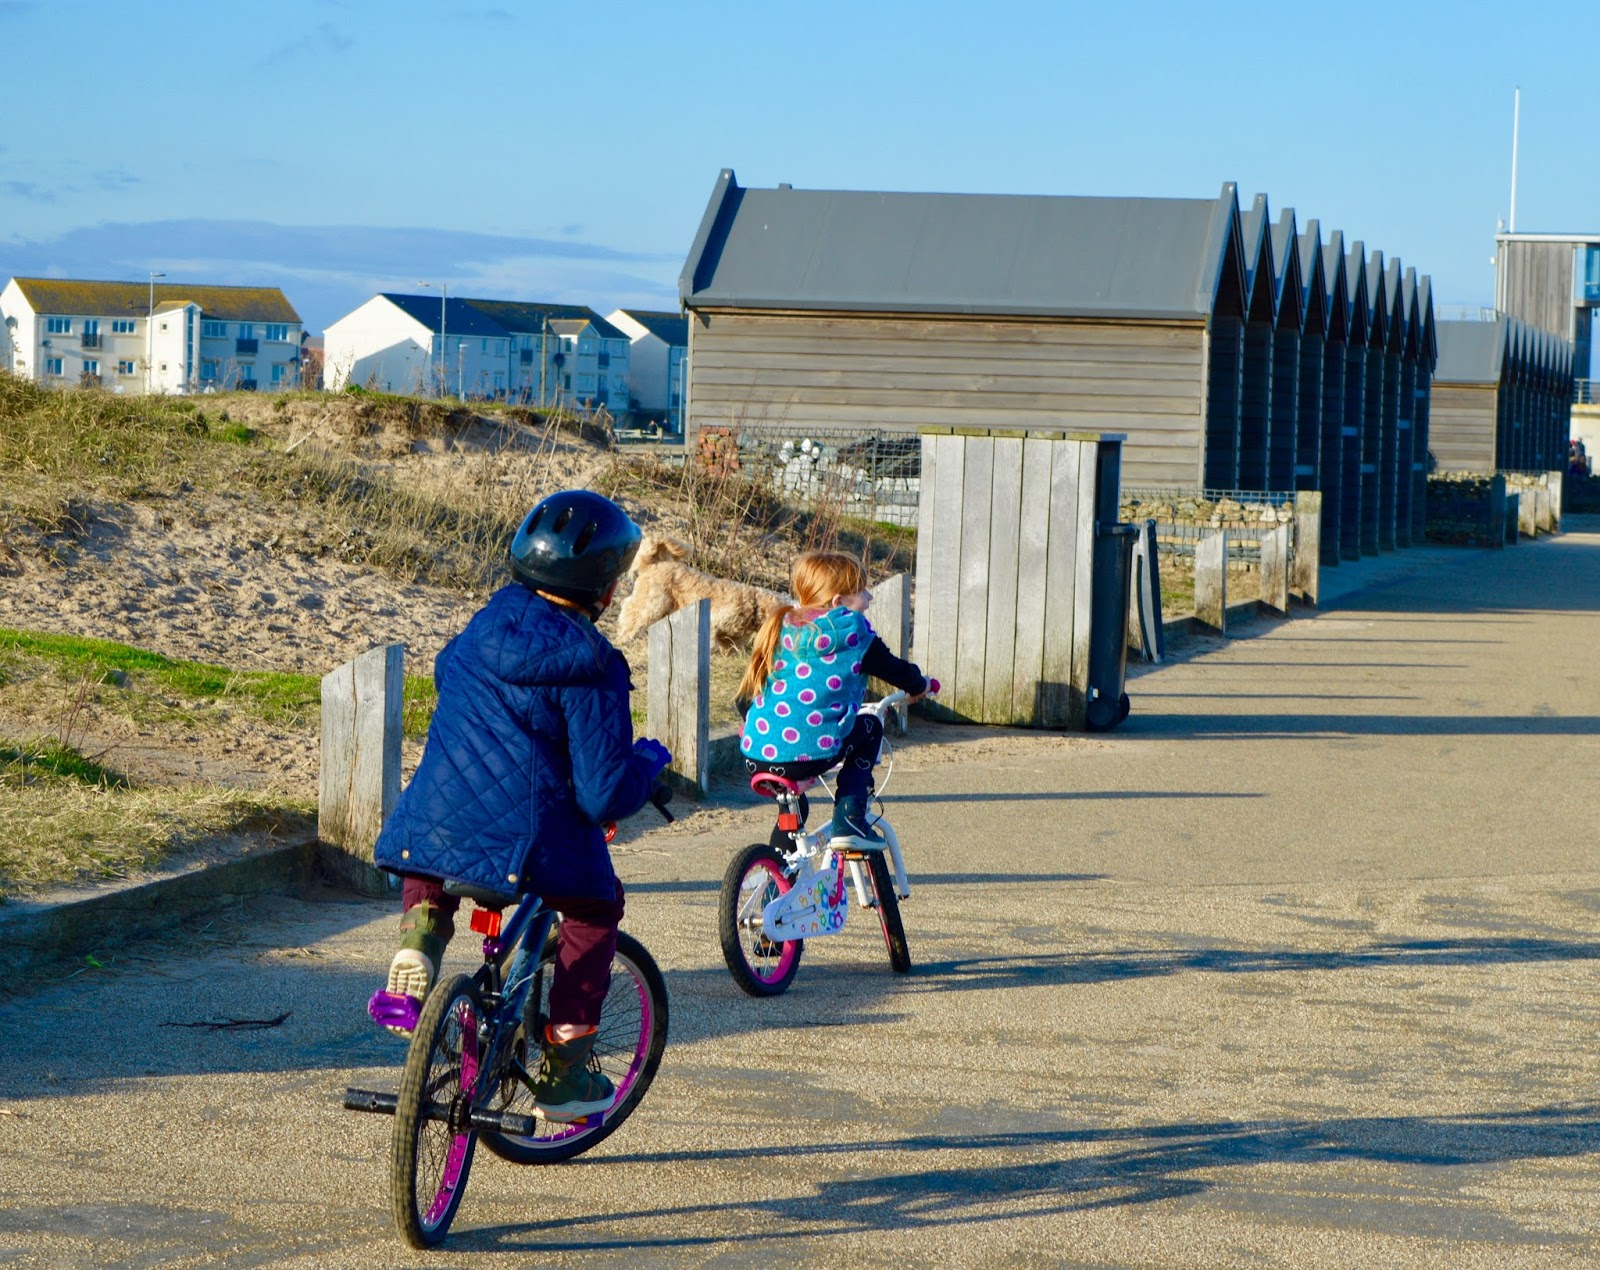 A Trip to Blyth Beach | How to Hire Beach Huts, Bus Information & Coastline Fish & Chips - bike riding at Blyth Beach